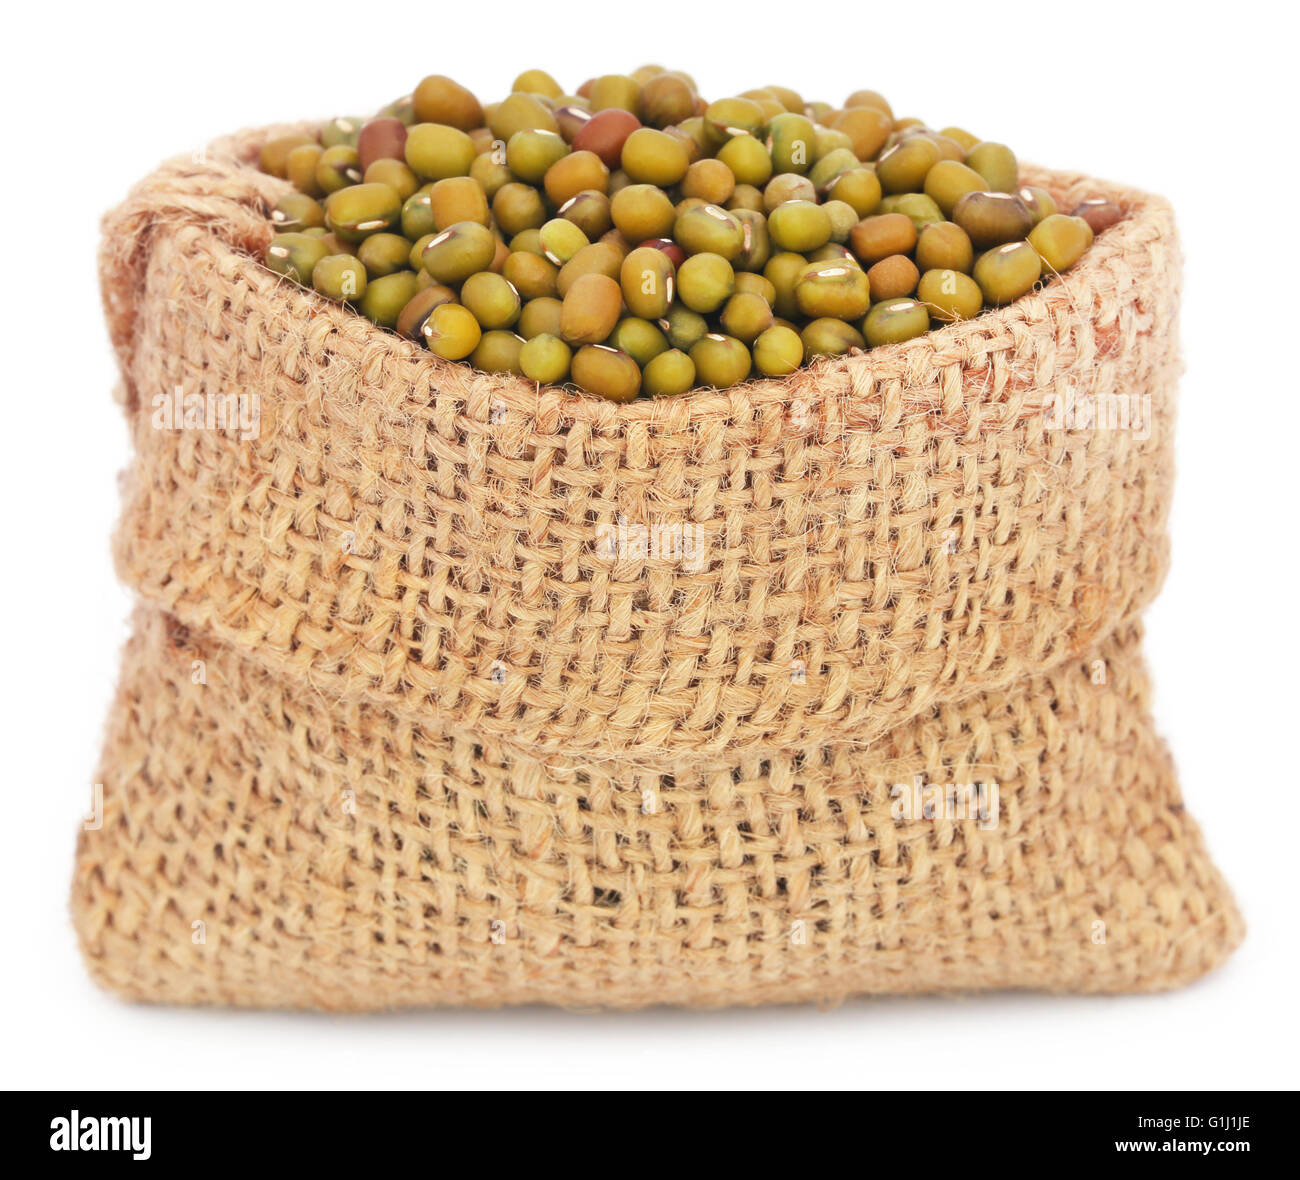 Mung beans in jute bag over white background - Stock Image